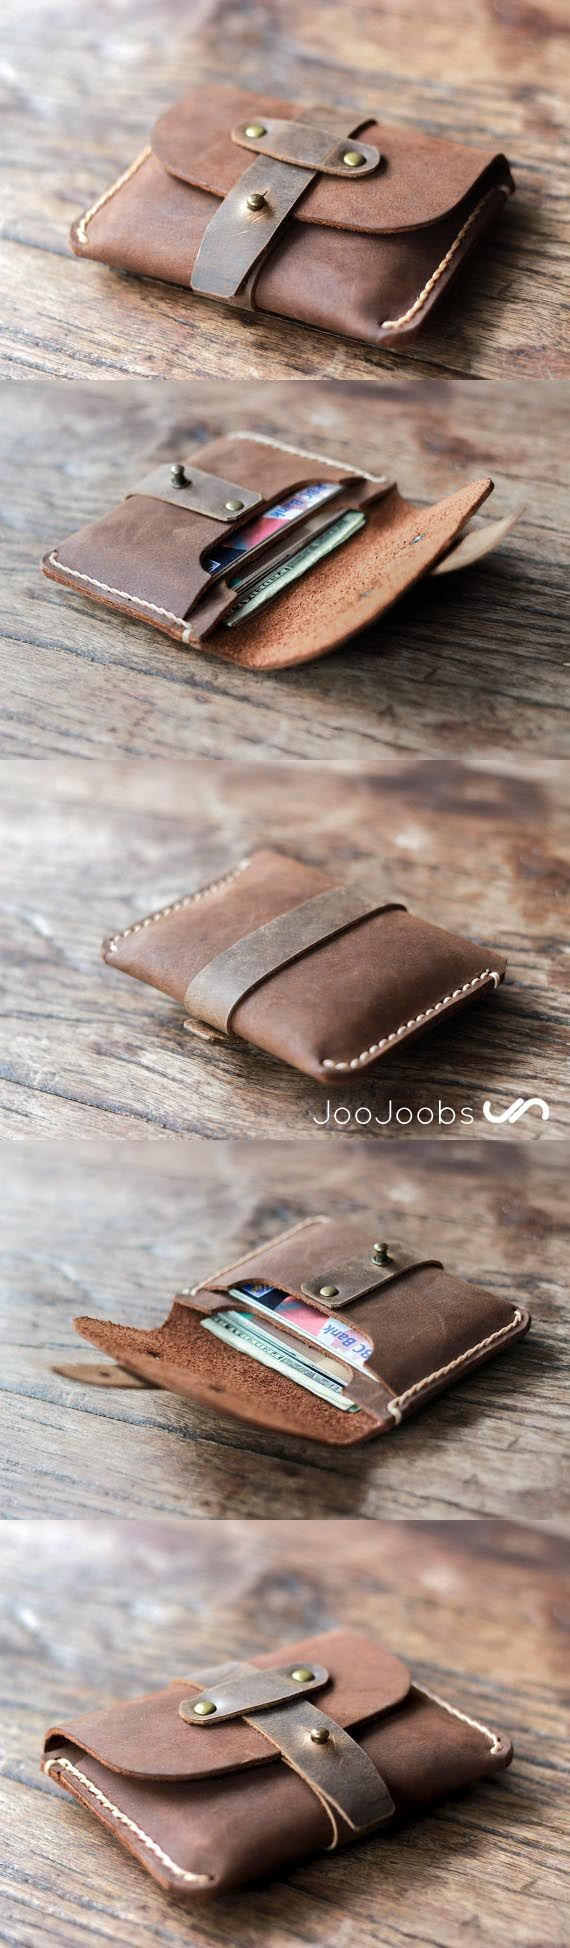 This handmade, leather coin purse will last a lifetime. Made by the master craftsmen Noi, from the JooJoobs workshop.